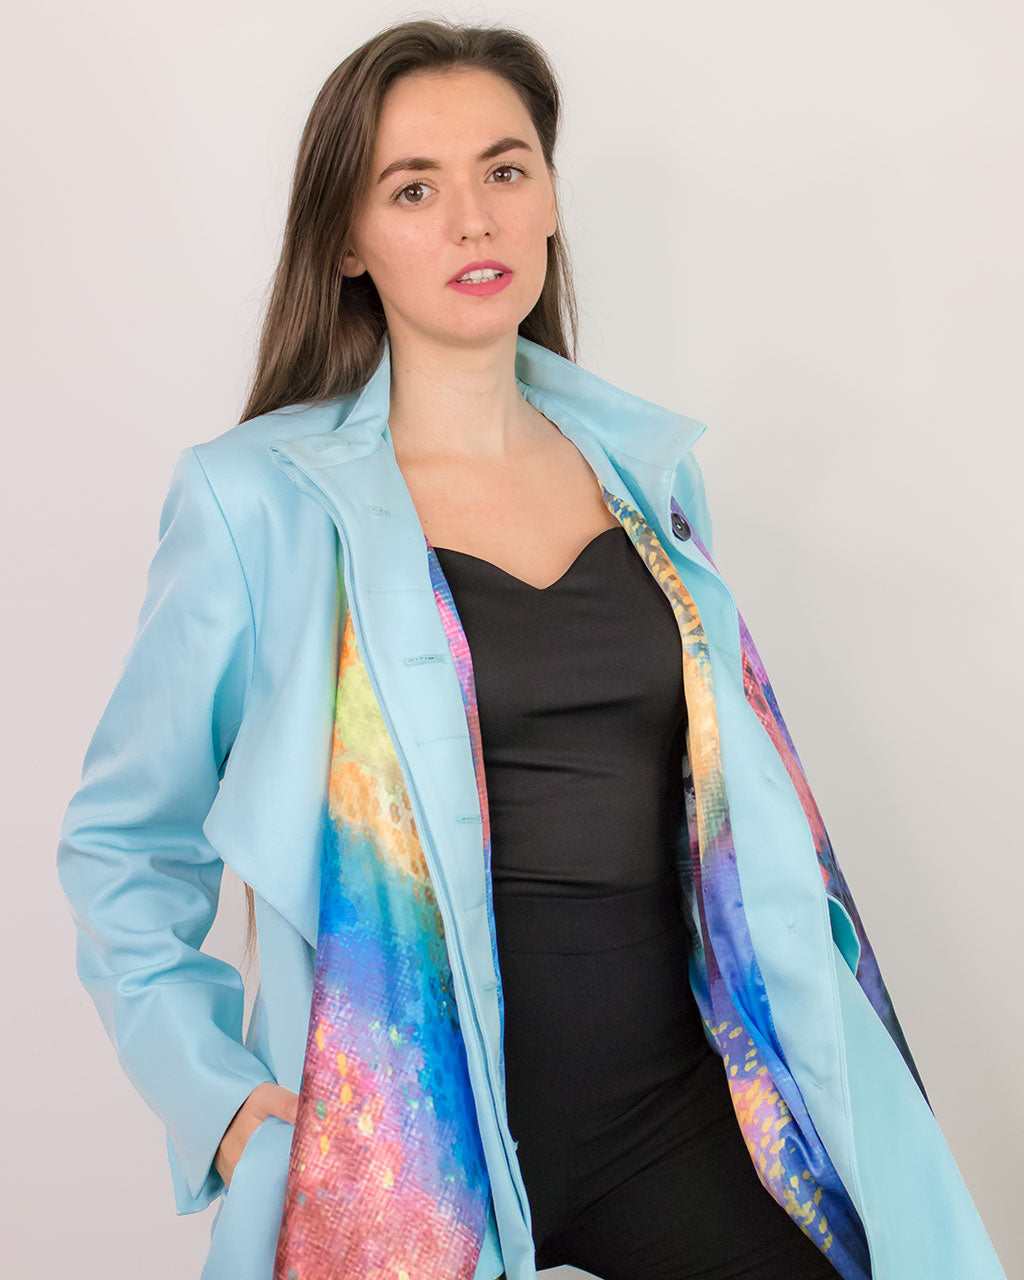 Pastel blue oversized trench coat Cardea by ADKN printed scarf detail from recycled plastic bottles satin perfect for spring